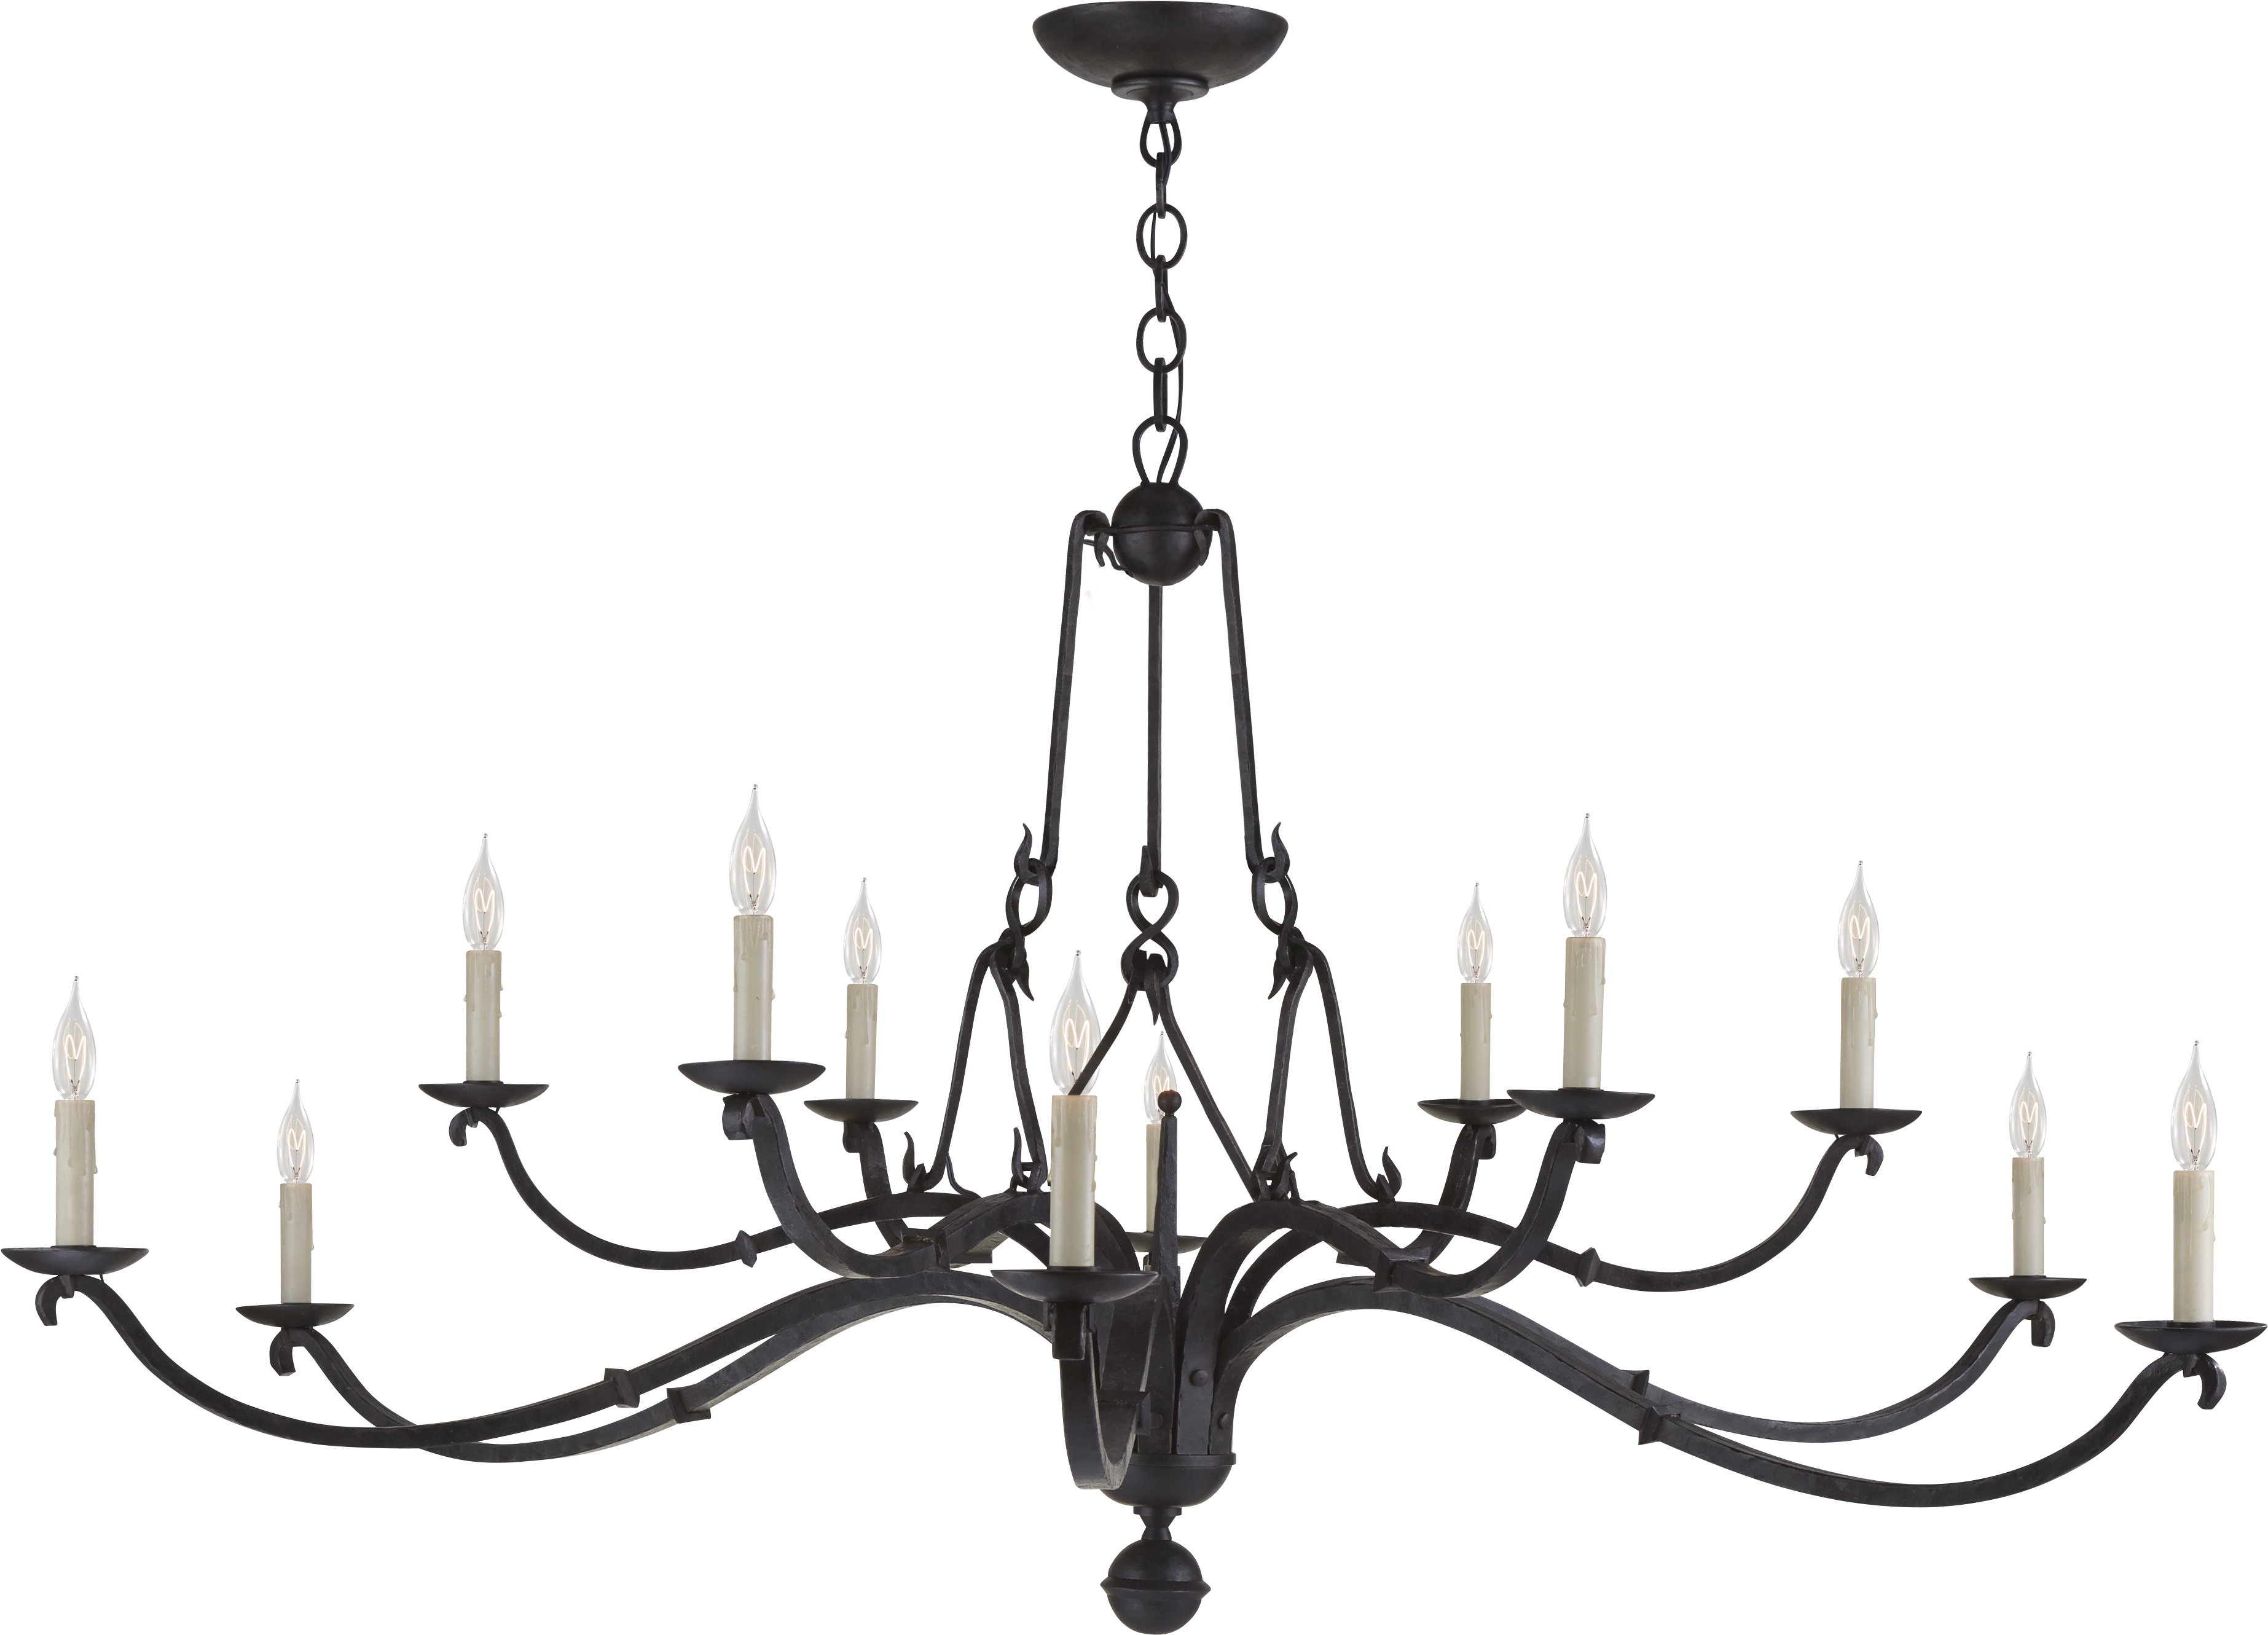 Large Bronze Chandelier Within Most Up To Date Large Chandelier Candle – Closdurocnoir (View 3 of 20)